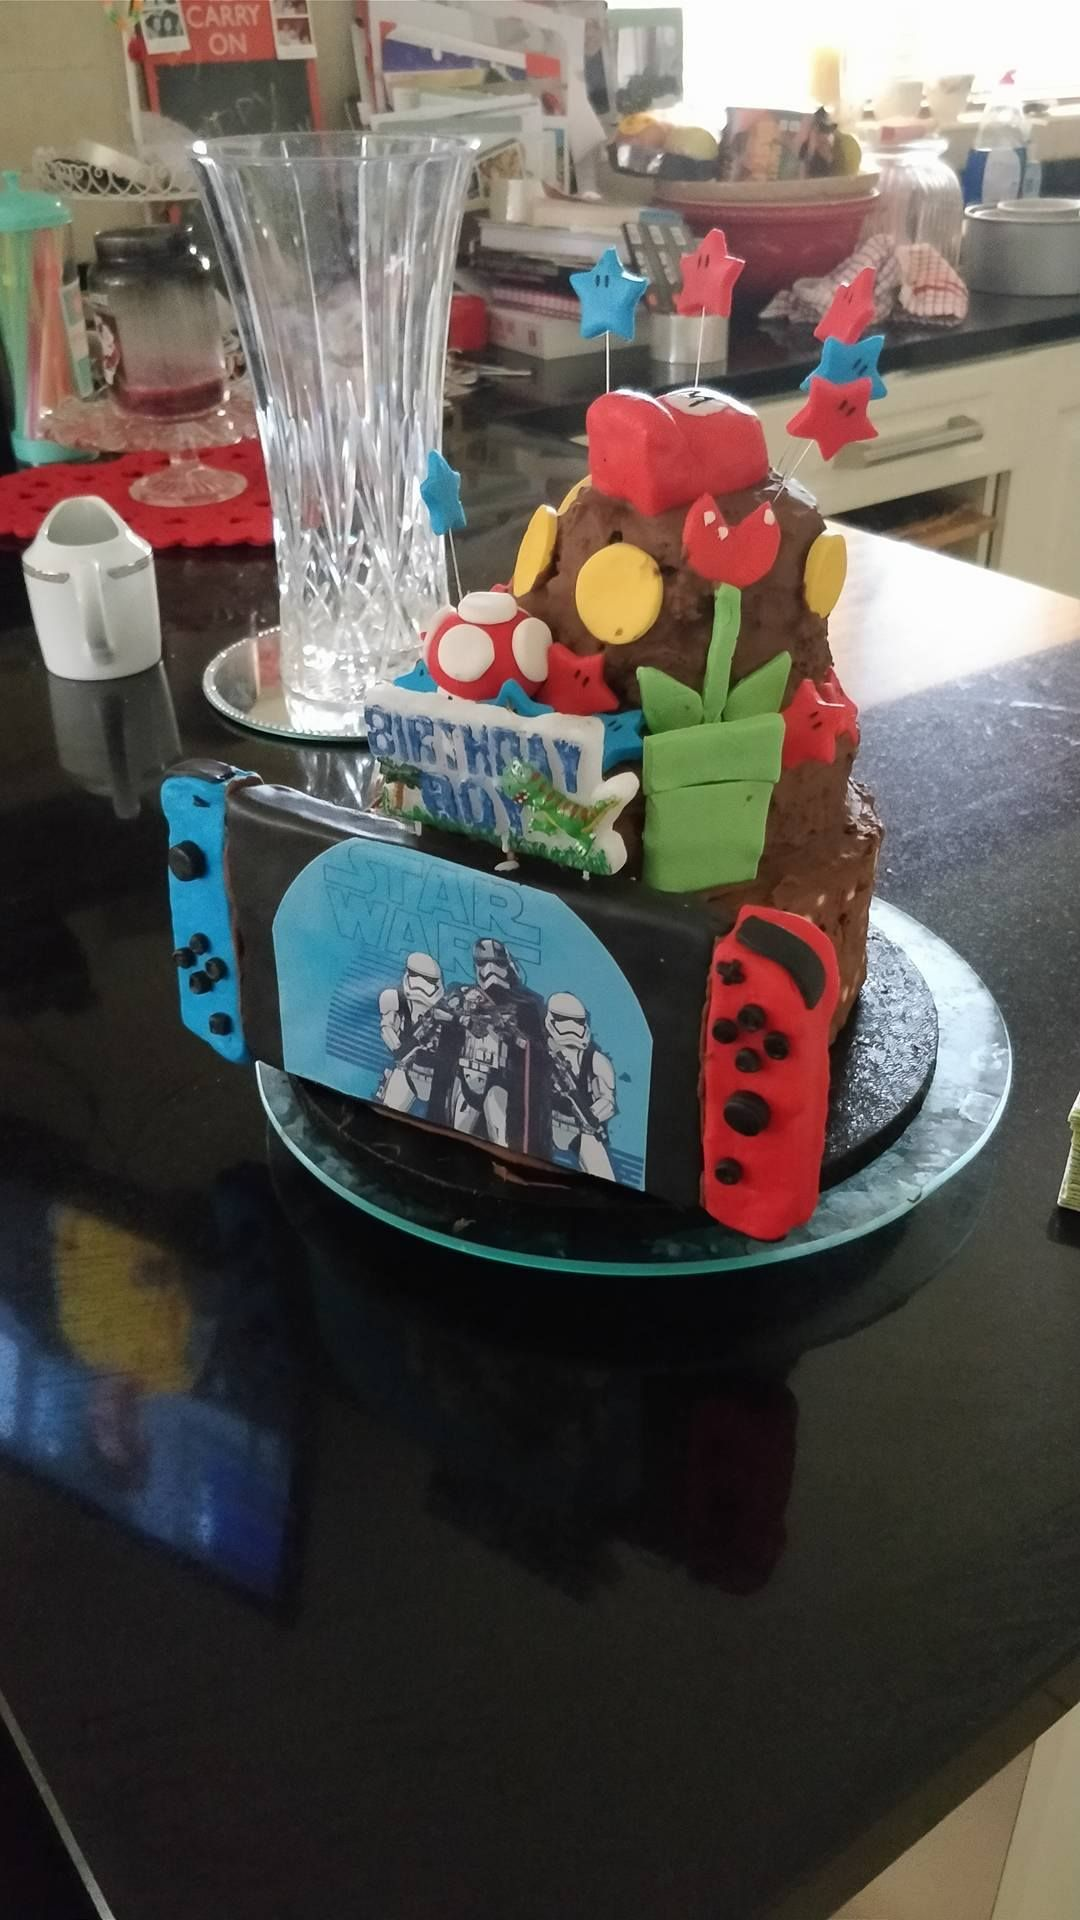 Pin by Angehatespeas on Jerms cake (With images) How to